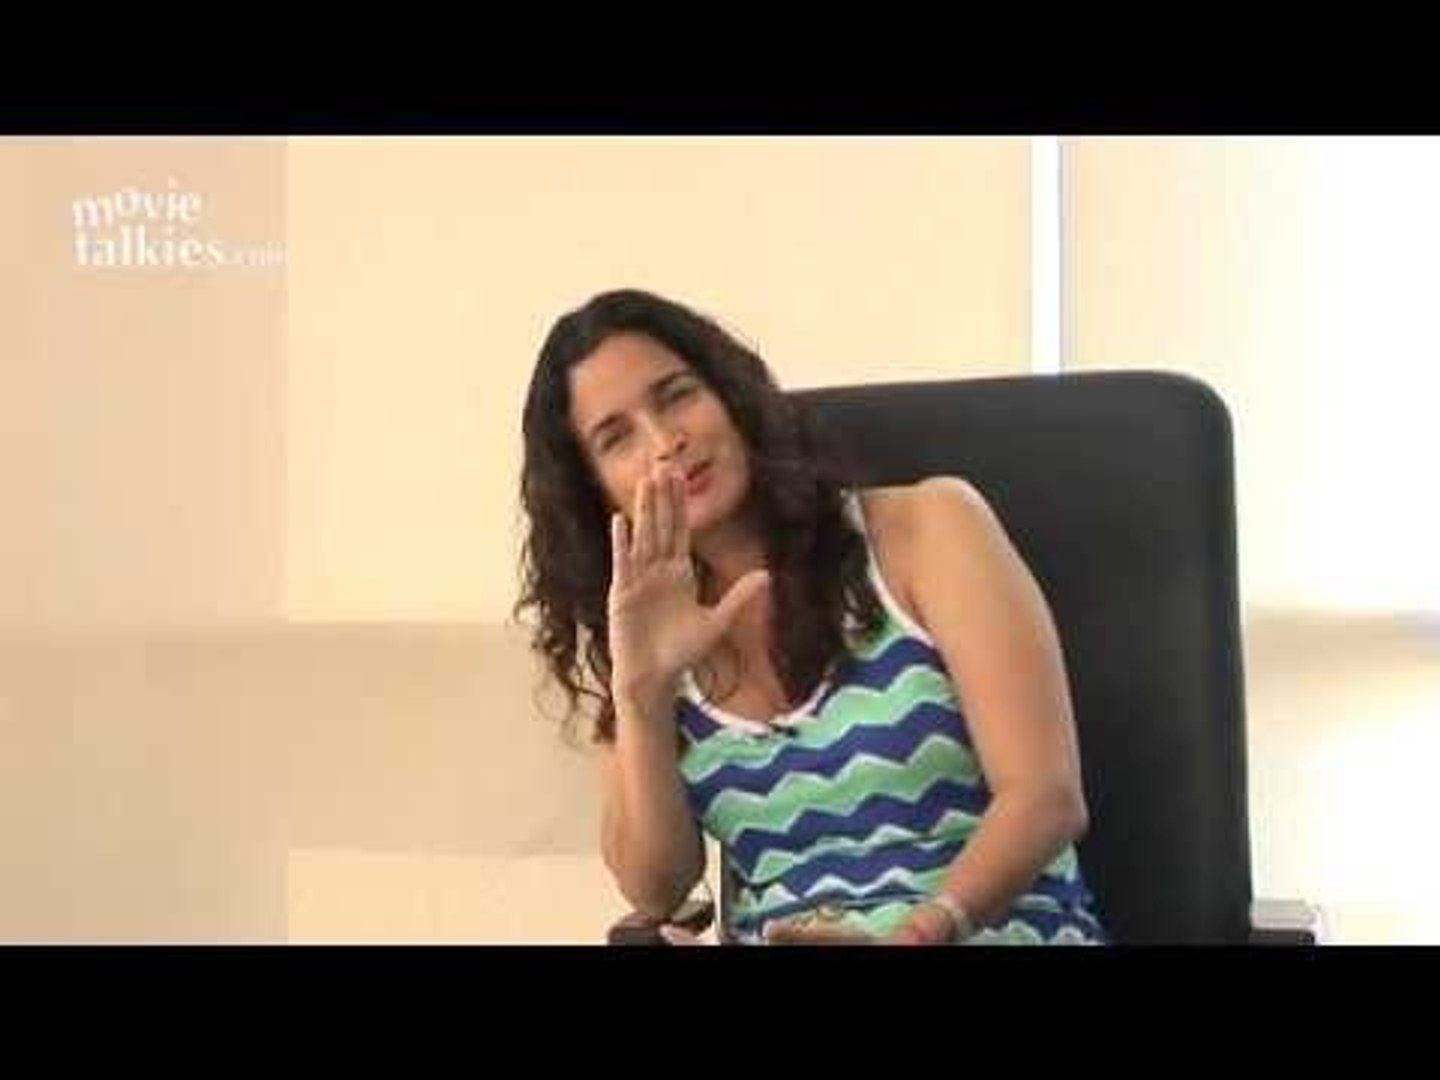 Sushma Reddy Speaks About Traveling, Her Dream Destinations & Tips For Safe Travel